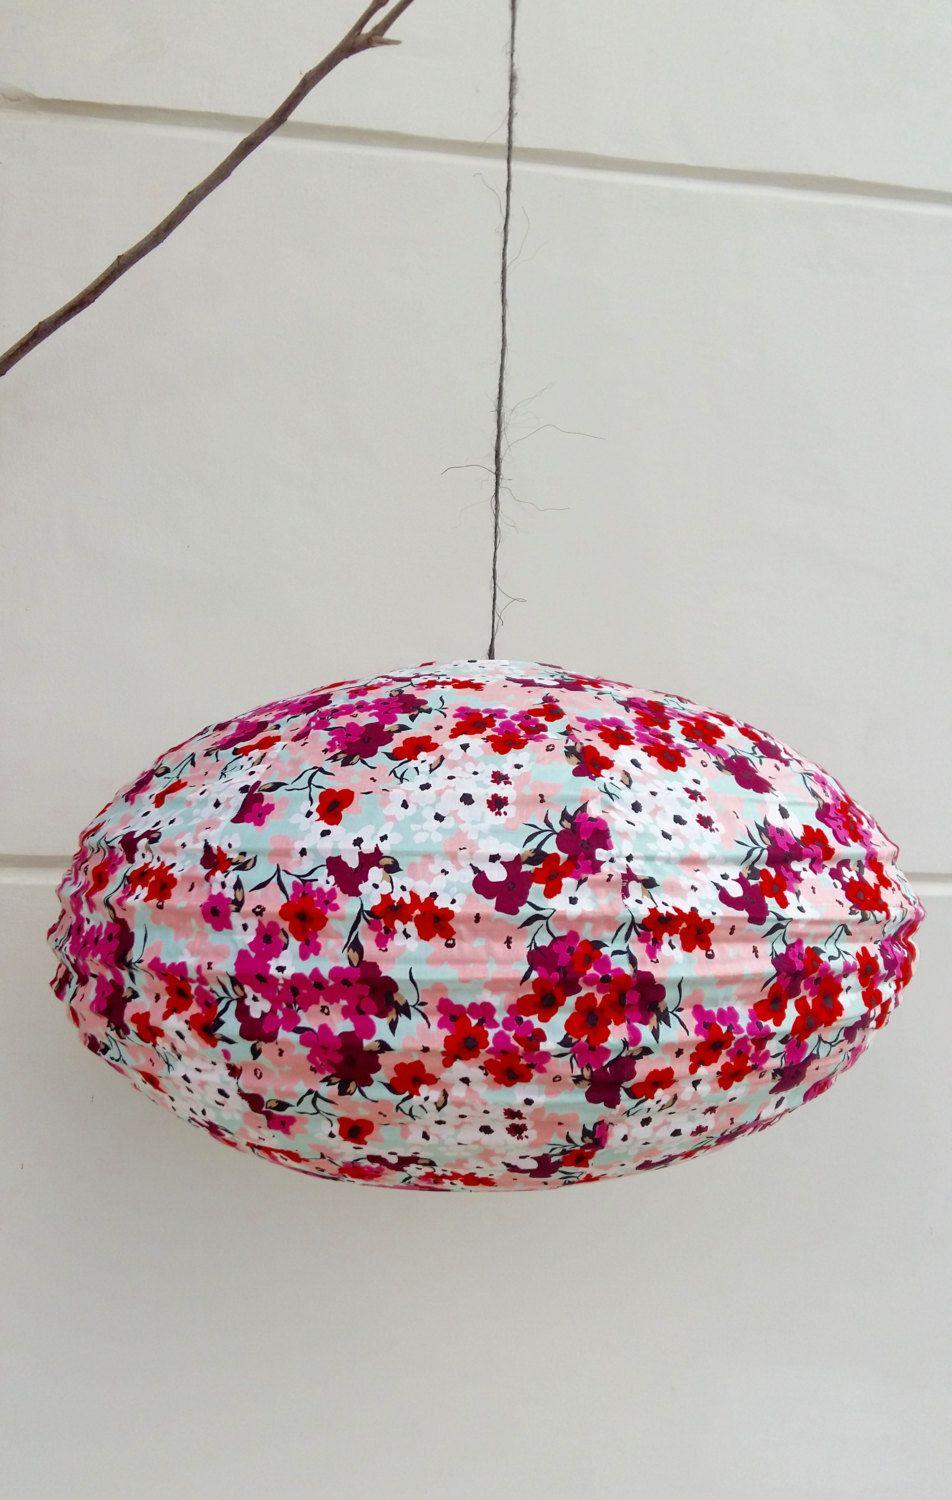 Pink & Red flowerfull lamp by Lesflibustieres on Etsy